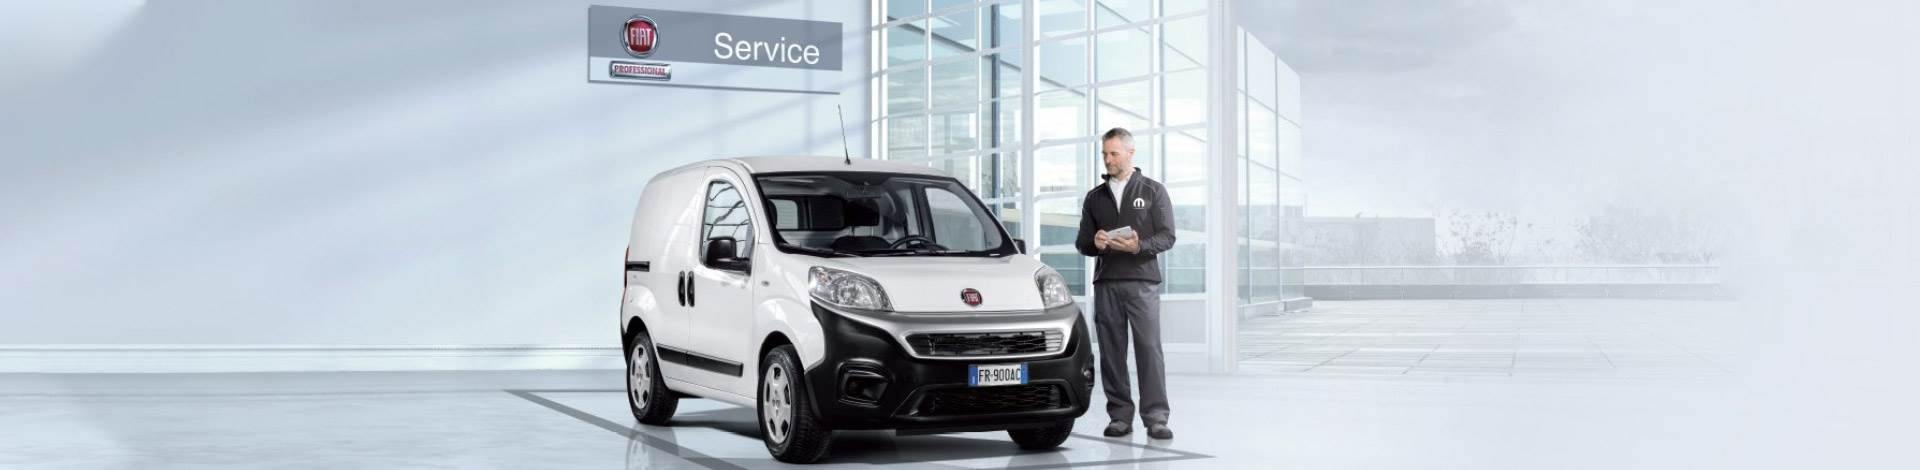 Fiat Professional extended servicing opening hours at North East Truck and Van